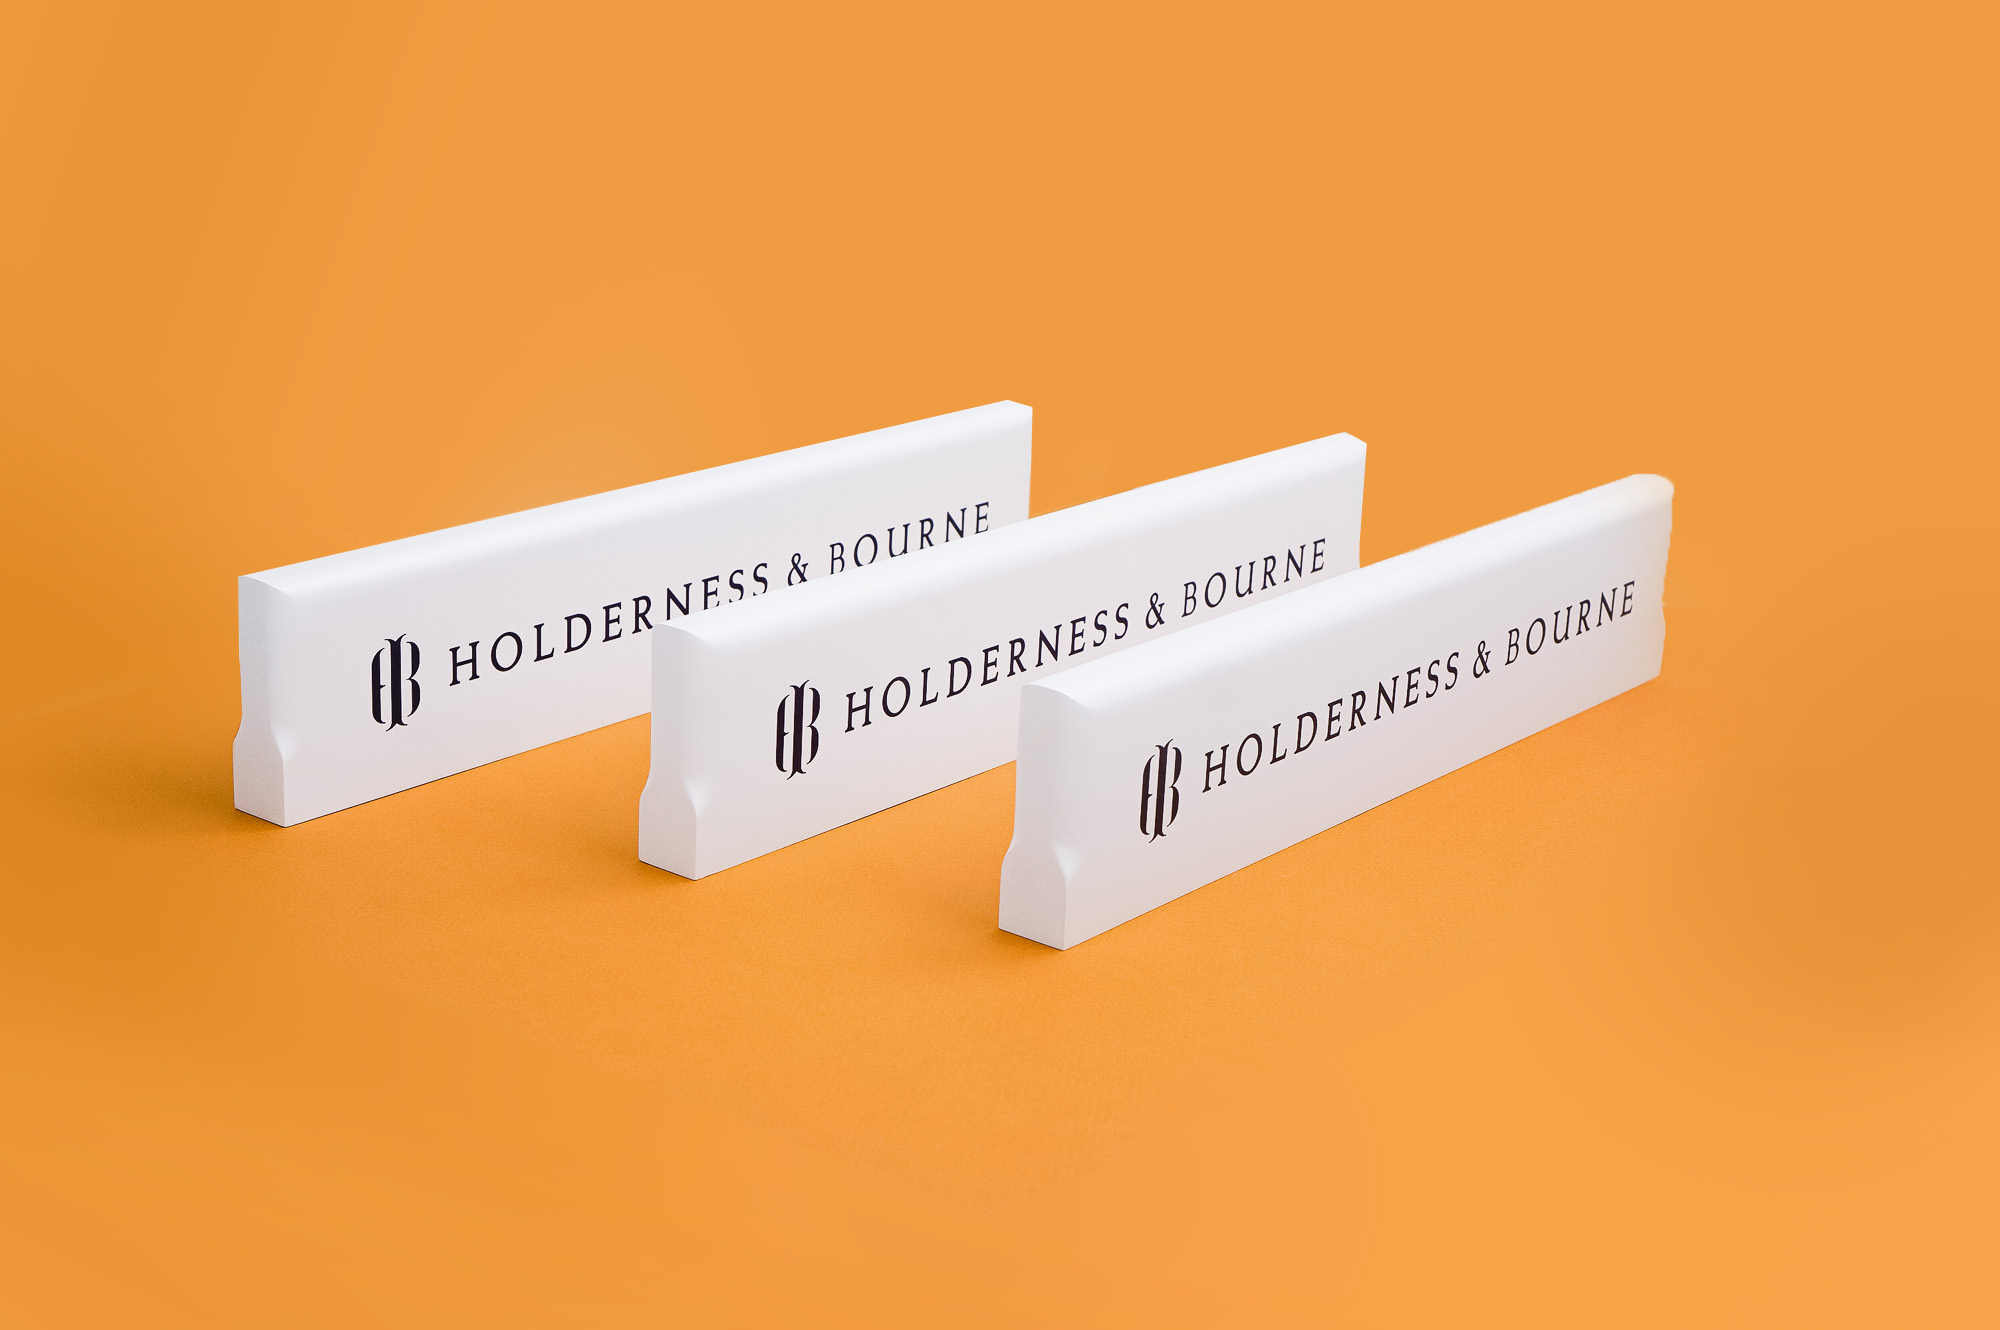 White and navy blue wood retail signs for Holderness & Bourne, a premium golf apparel and accessories company.